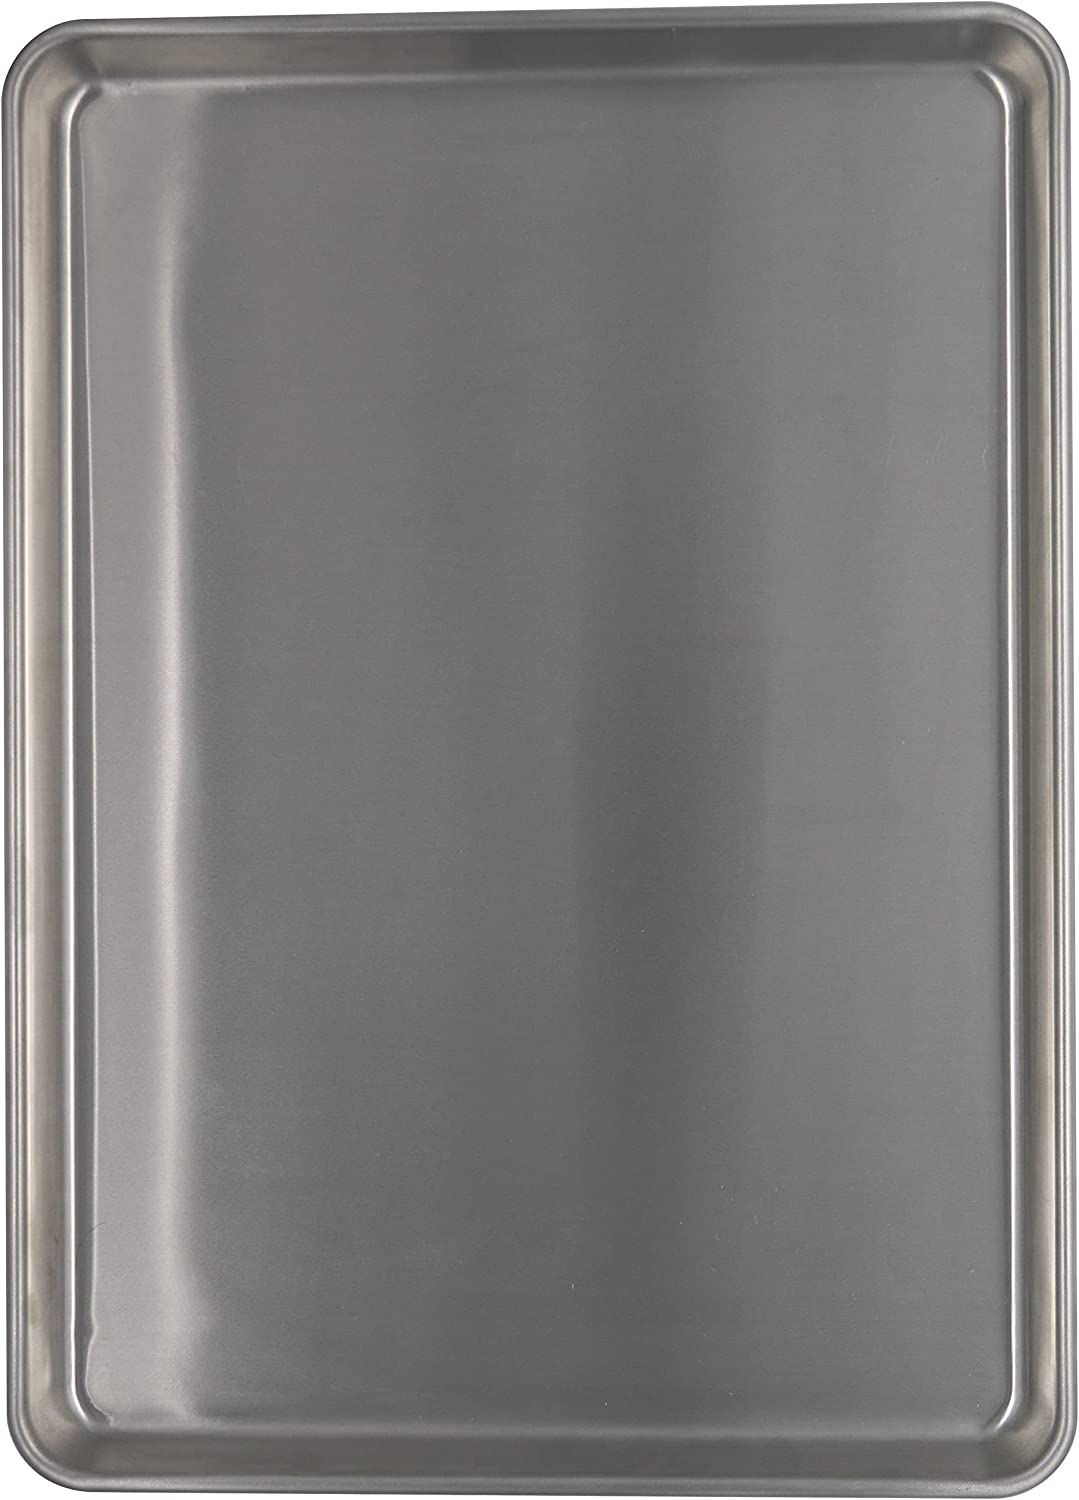 Chef Select Commercial Grade Mega Aluminum Baking Sheet, 21 x 15-Inches, Heavy Gauge Cookie Sheet